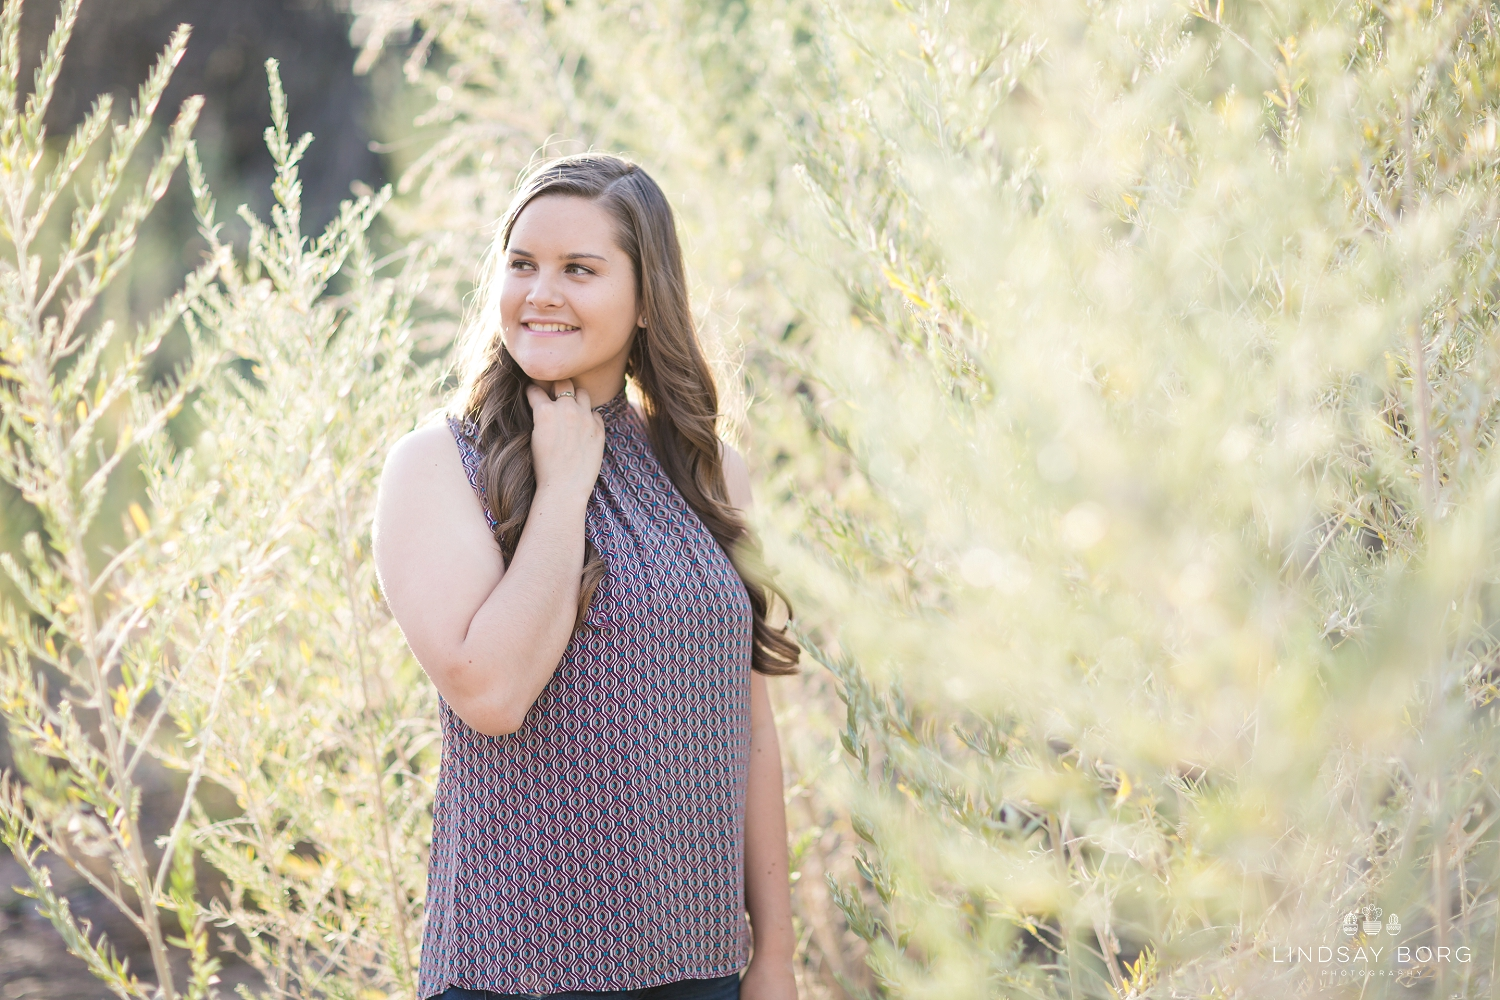 Lindsay-Borg-Photography-arizona-senior-wedding-portrait-photographer-az_0023.jpg